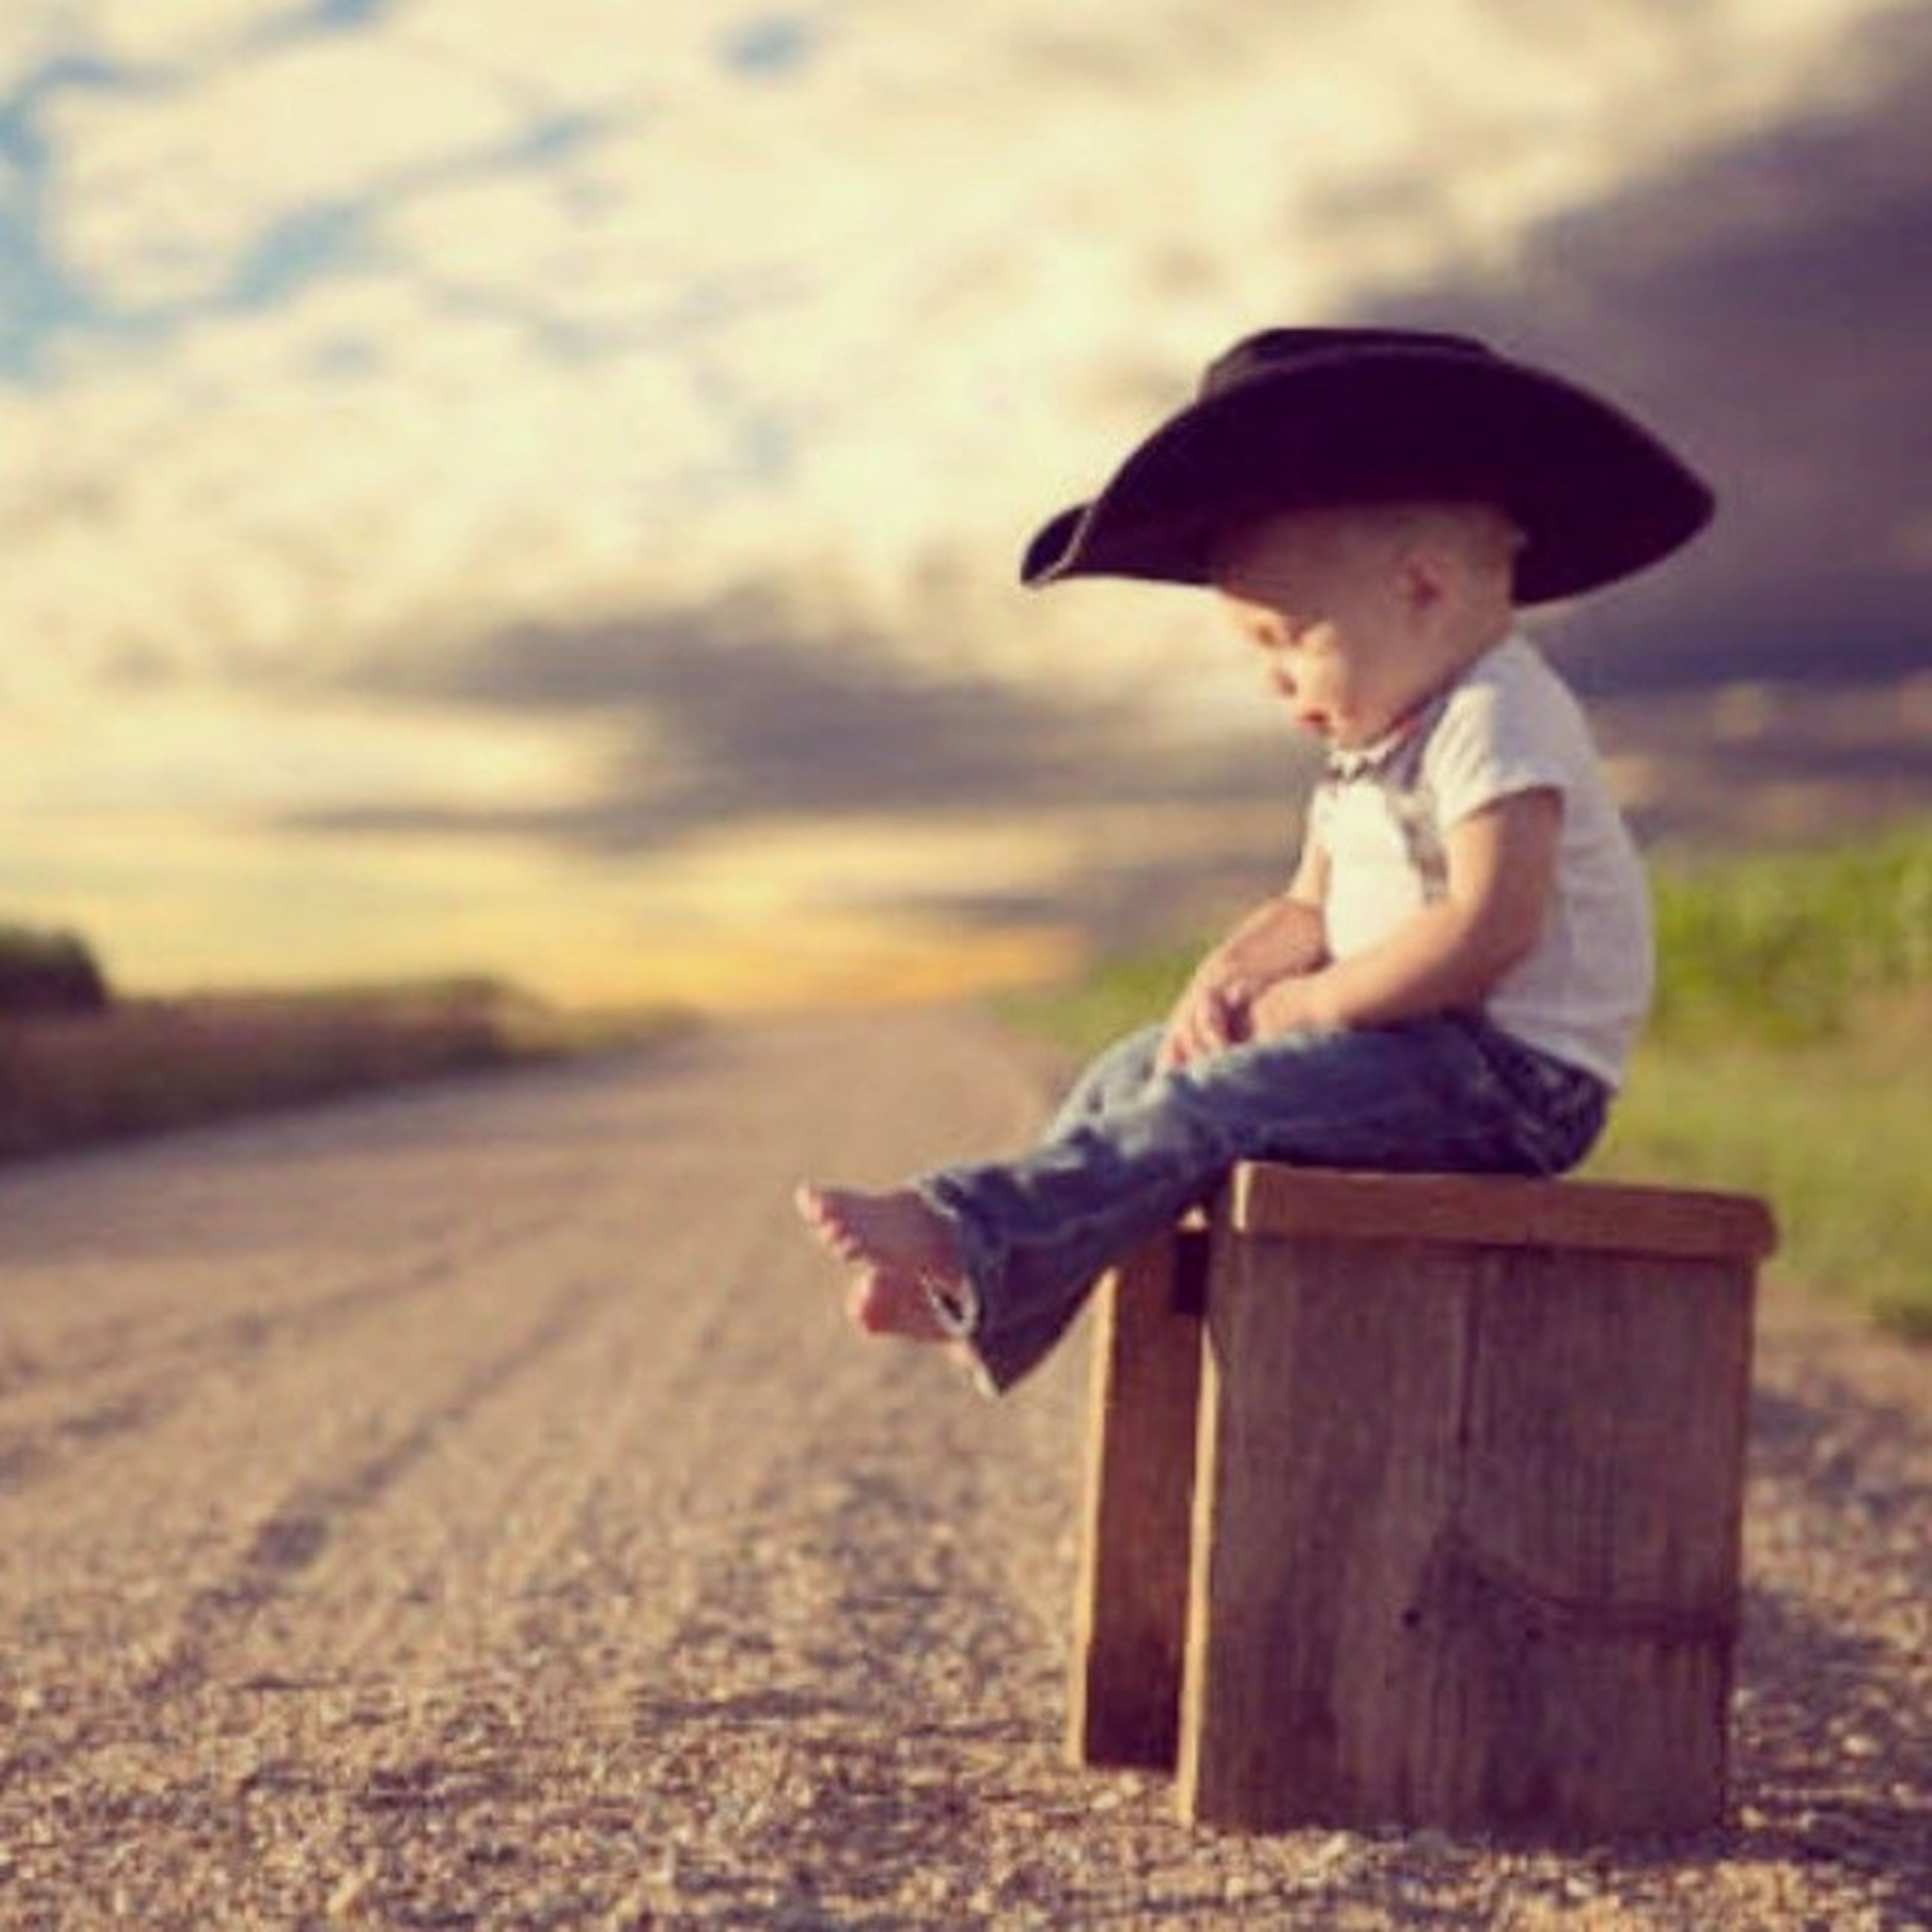 focus on foreground, full length, side view, outdoors, lifestyles, childhood, field, holding, day, leisure activity, rear view, sitting, casual clothing, toy, selective focus, hat, sunlight, nature